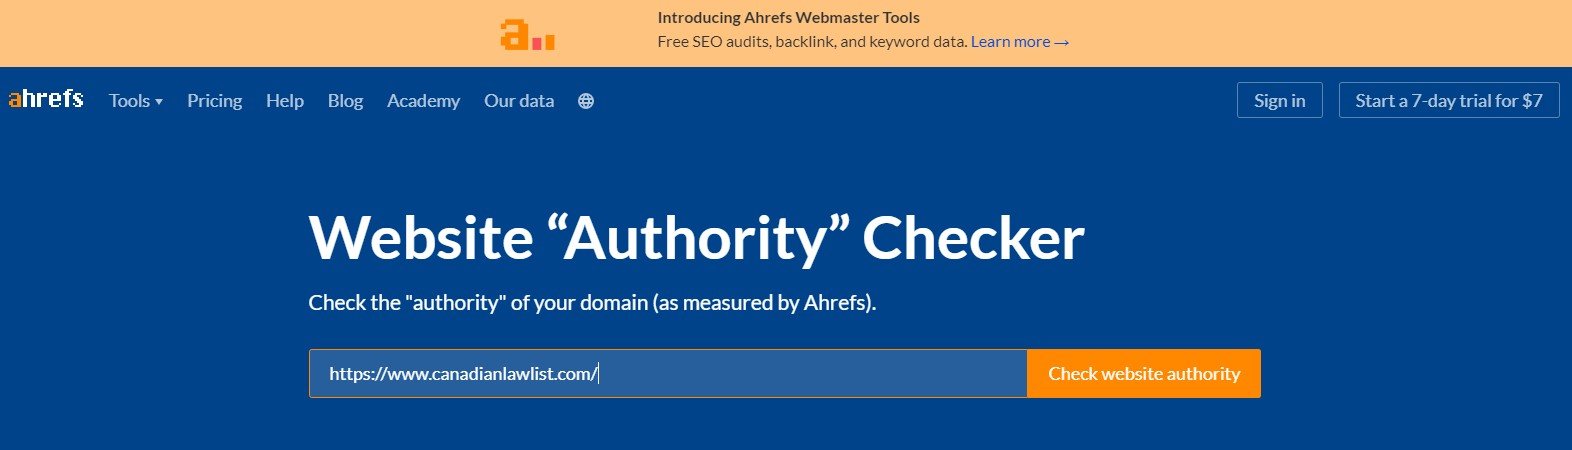 You can check the authority of any domain by entering the URL into Ahrefs domain checker